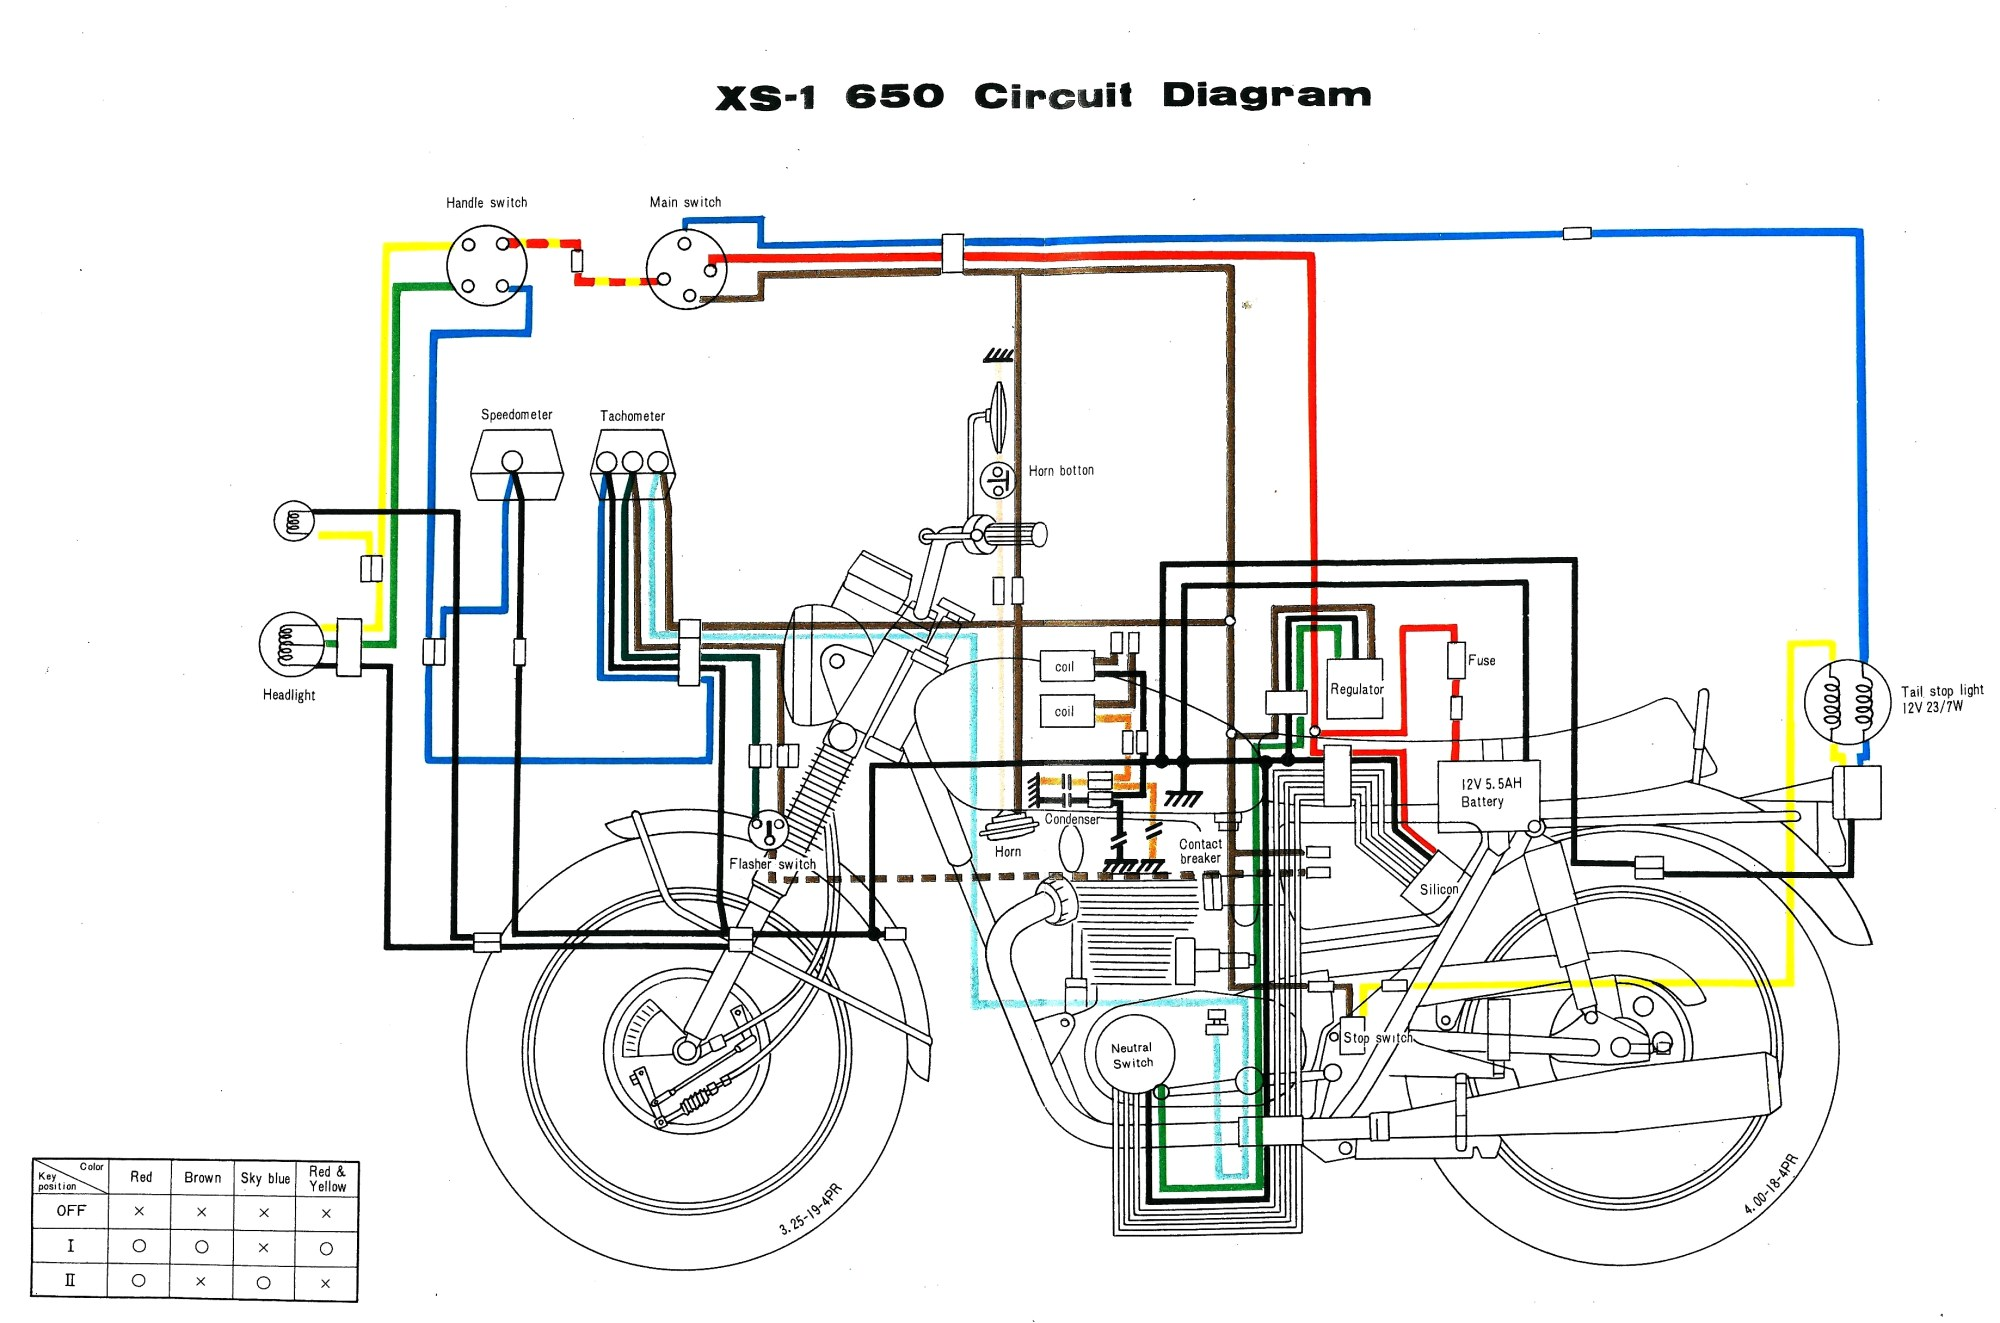 hight resolution of yamaha 750 wiring diagram wiring diagram name 1983 yamaha maxim 750 wiring diagram yamaha 750 wiring diagram